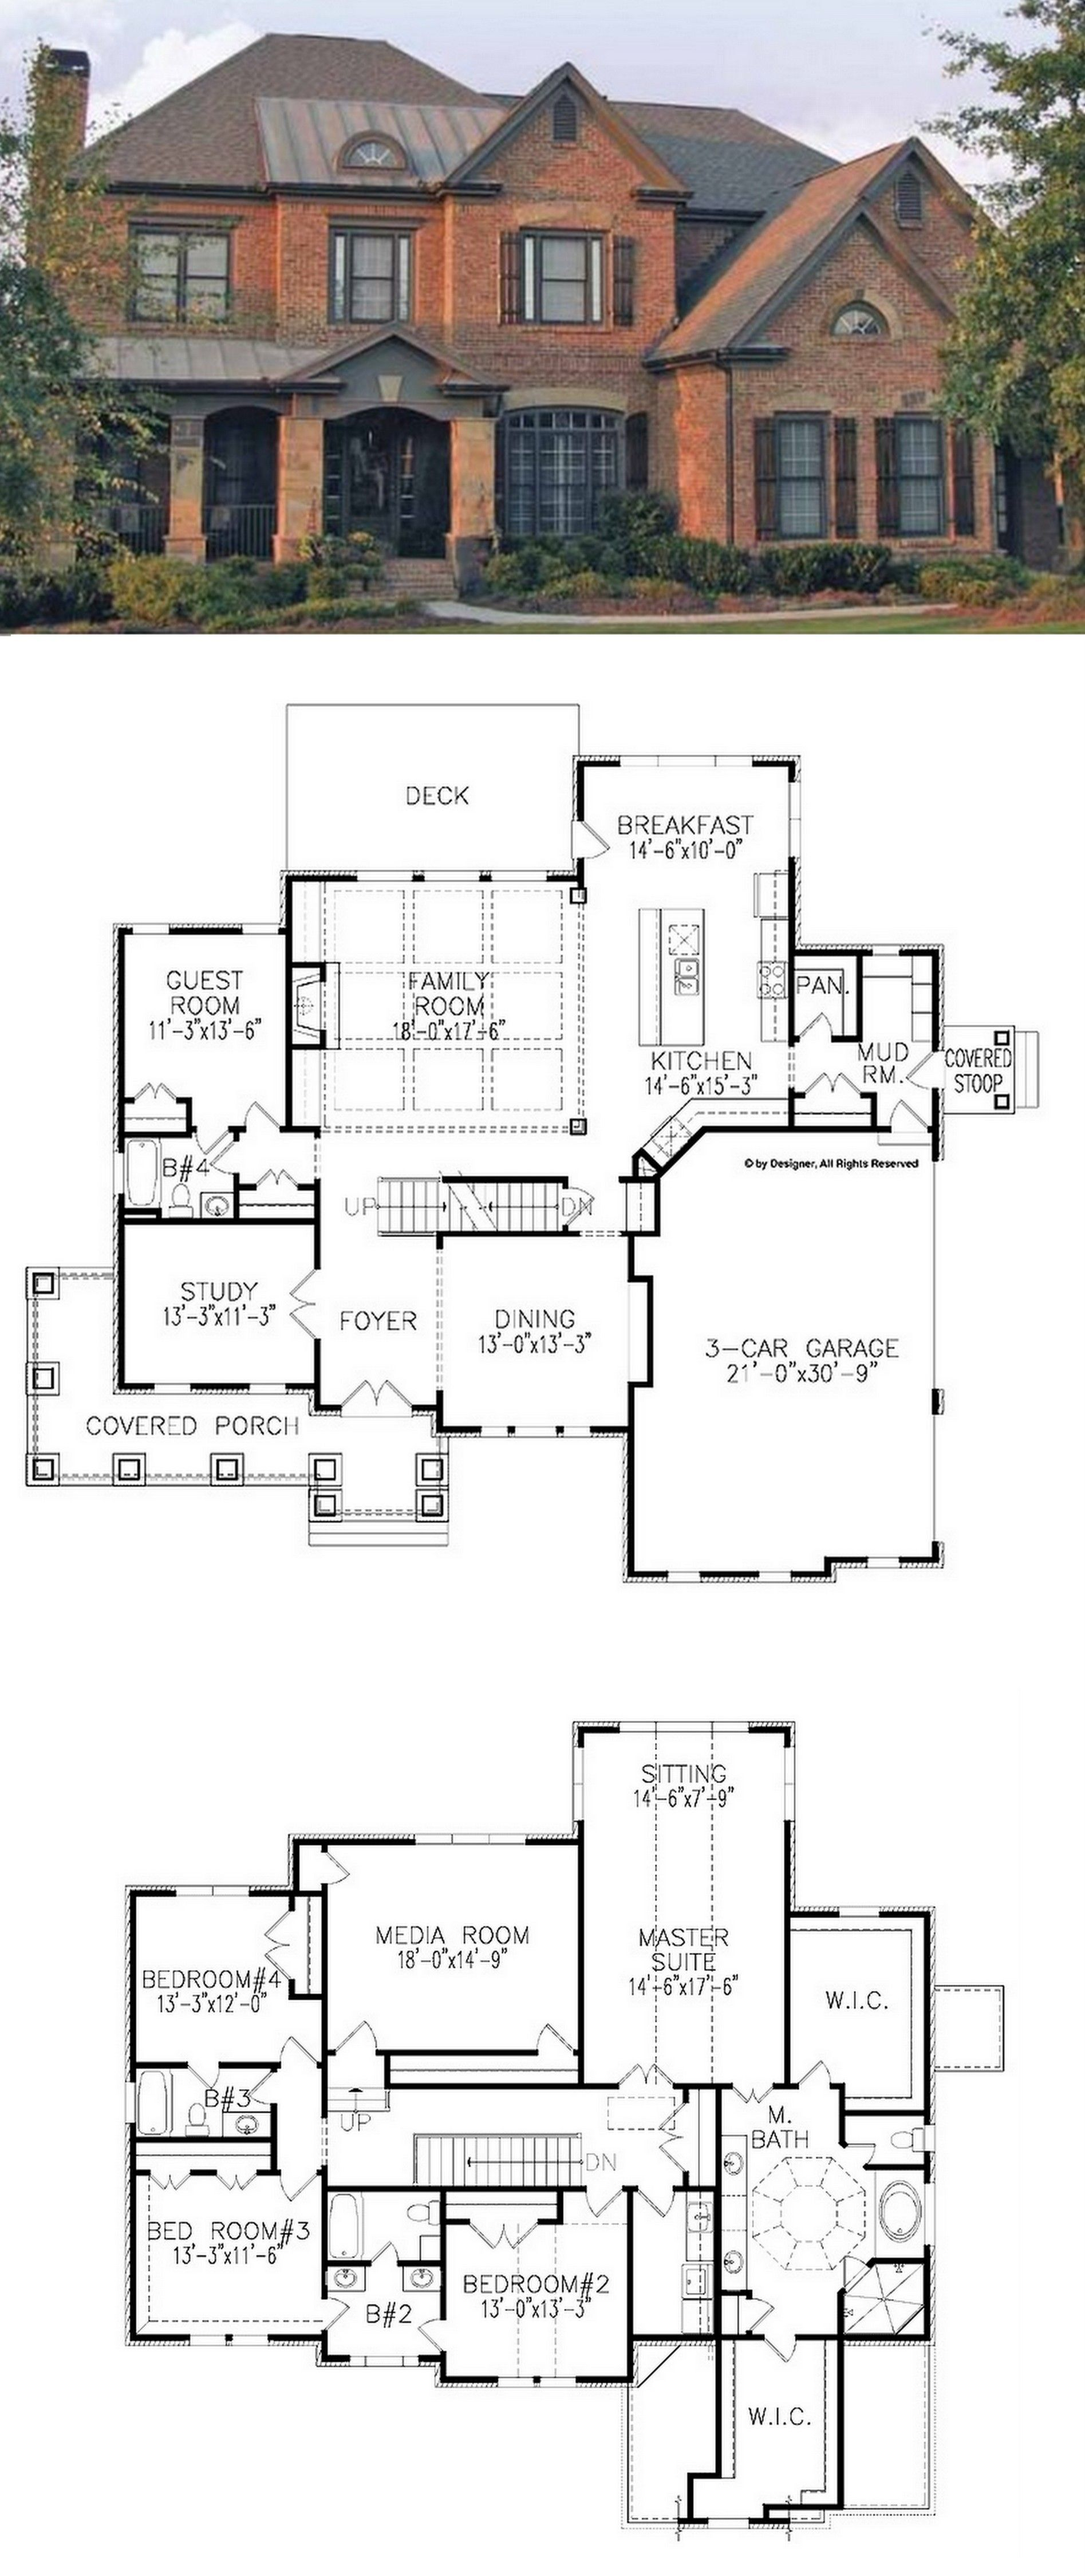 Charming Traditional House Plan With 3962 Square Feet And 5 Bedrooms From Dream Home  Source | House